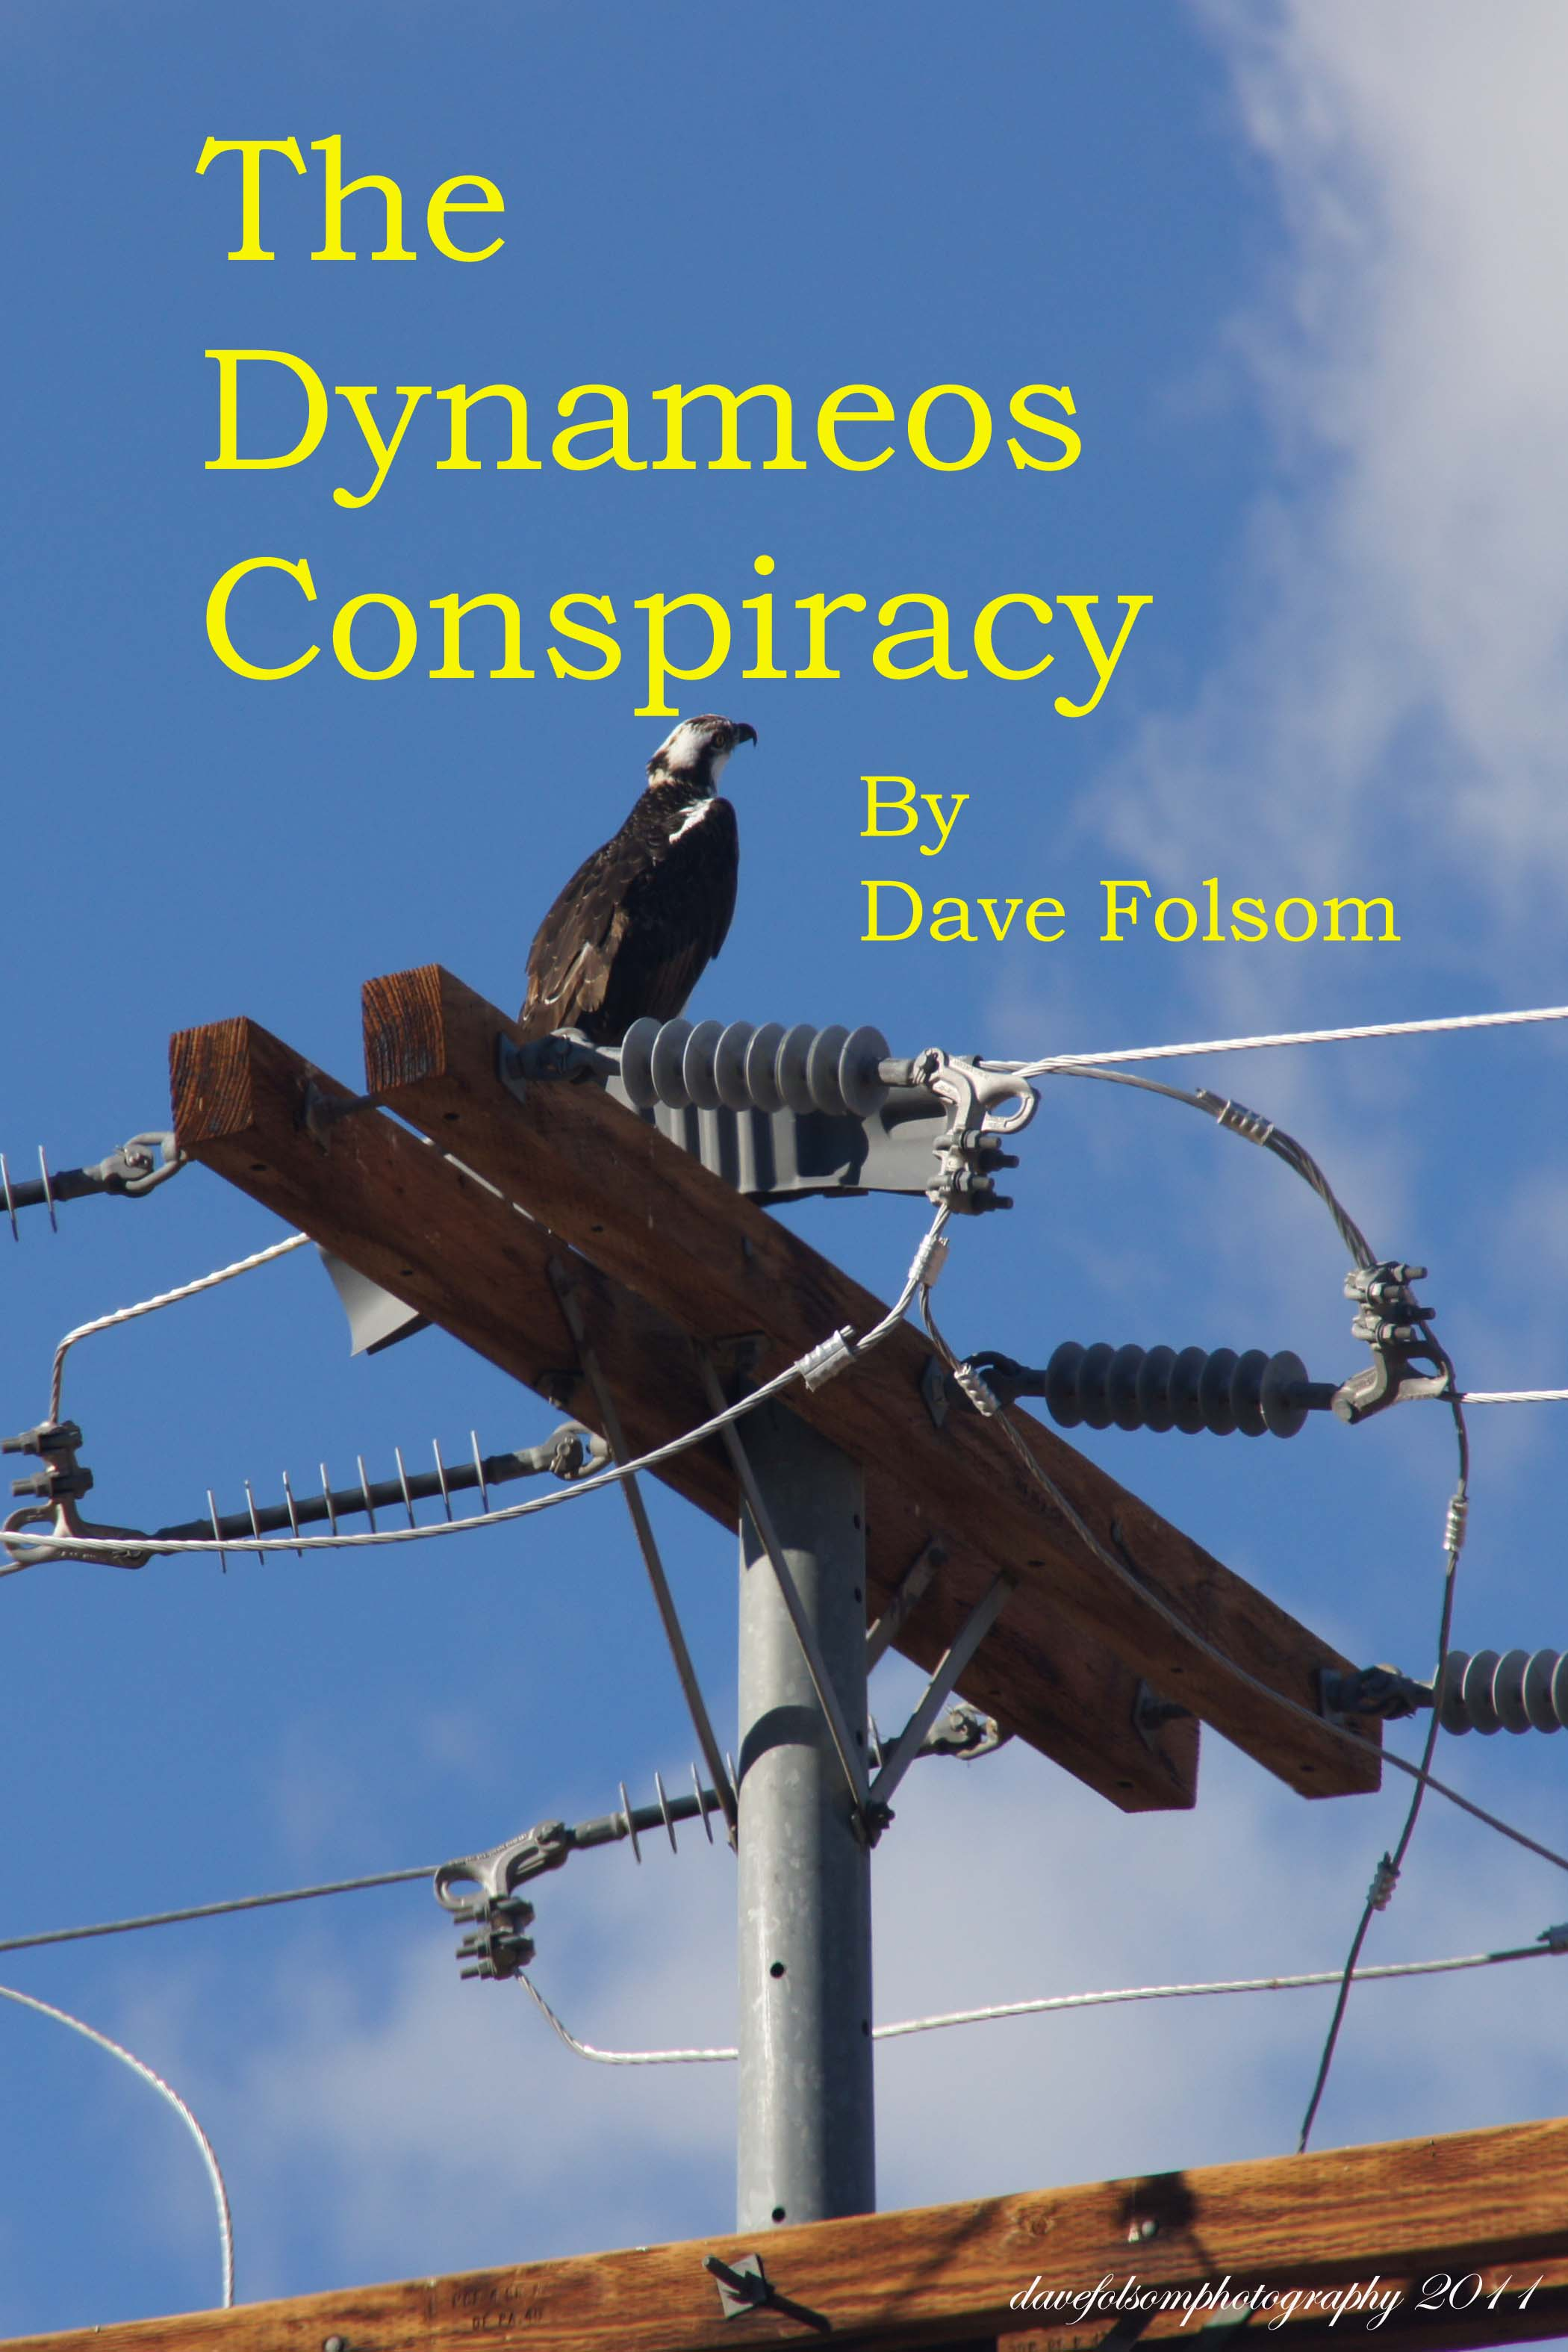 The Dynameos Conspiracy